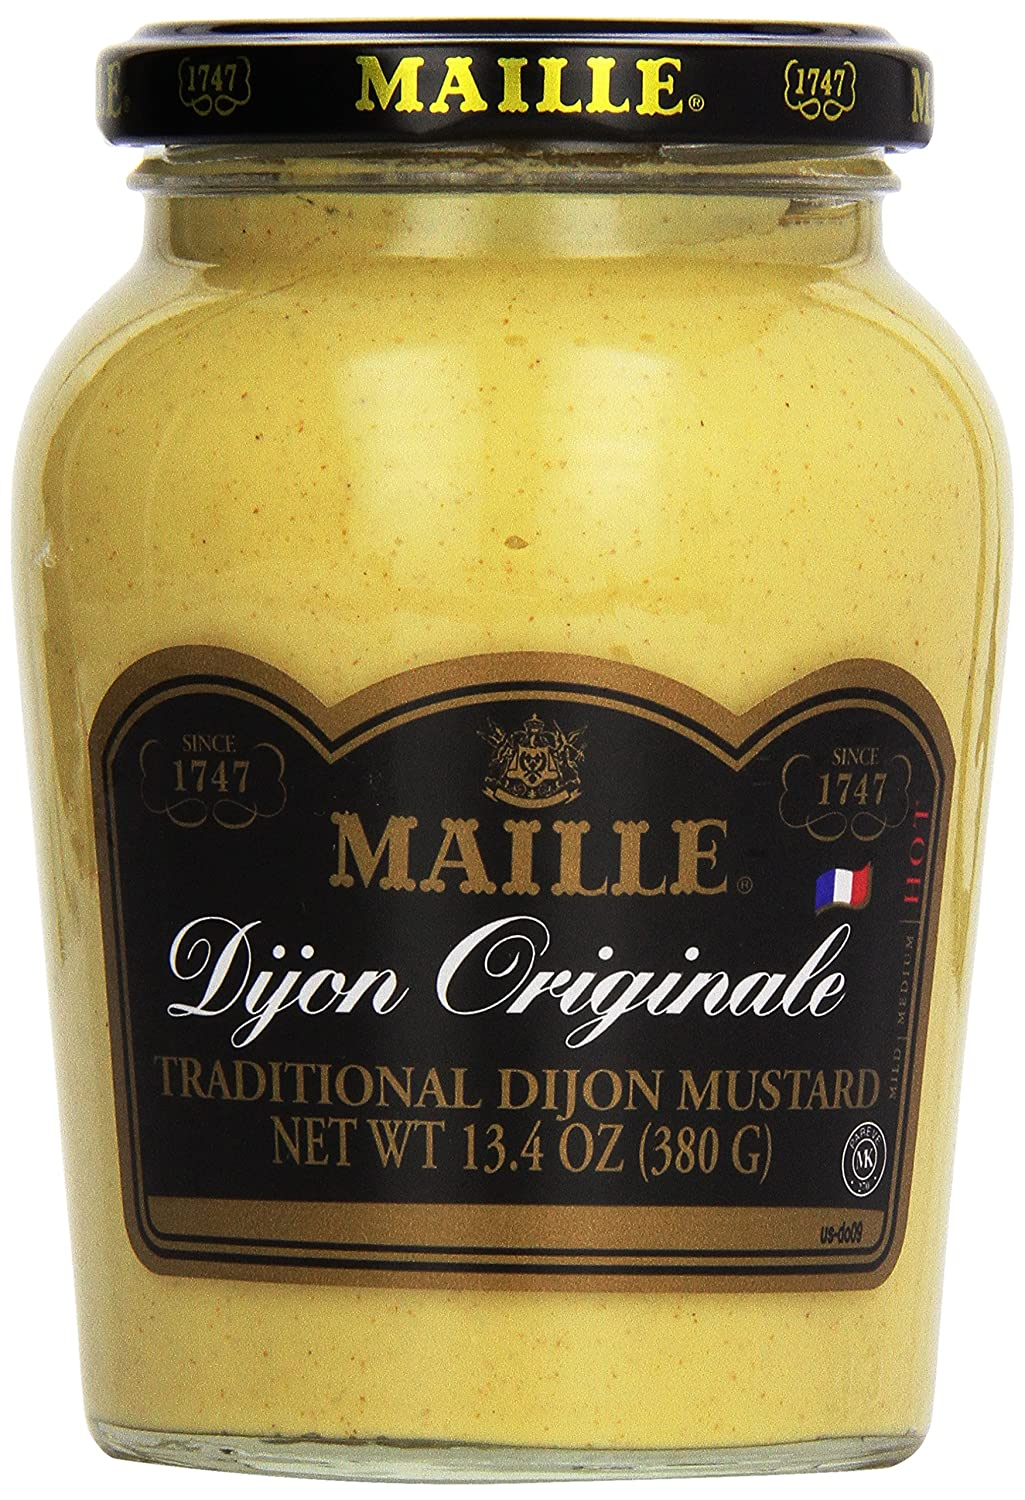 Maille Dijon mustard from France. #bestmustard #frenchfood #dijon